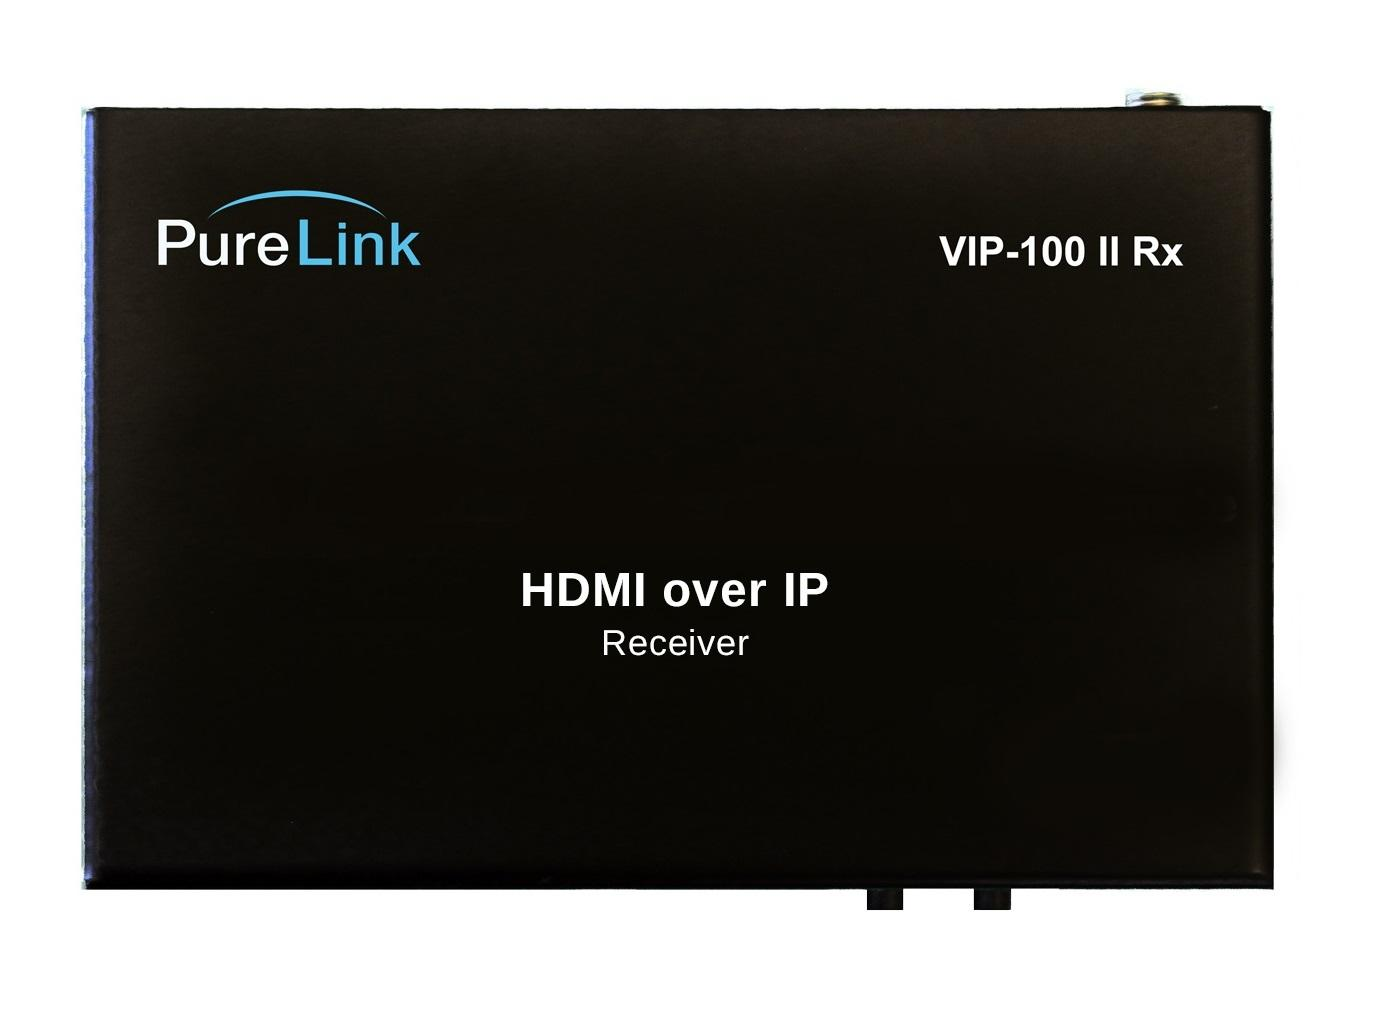 PureLink VIP-100H II Rx HDMI over IP Extension Extender (Receiver)/Full HD